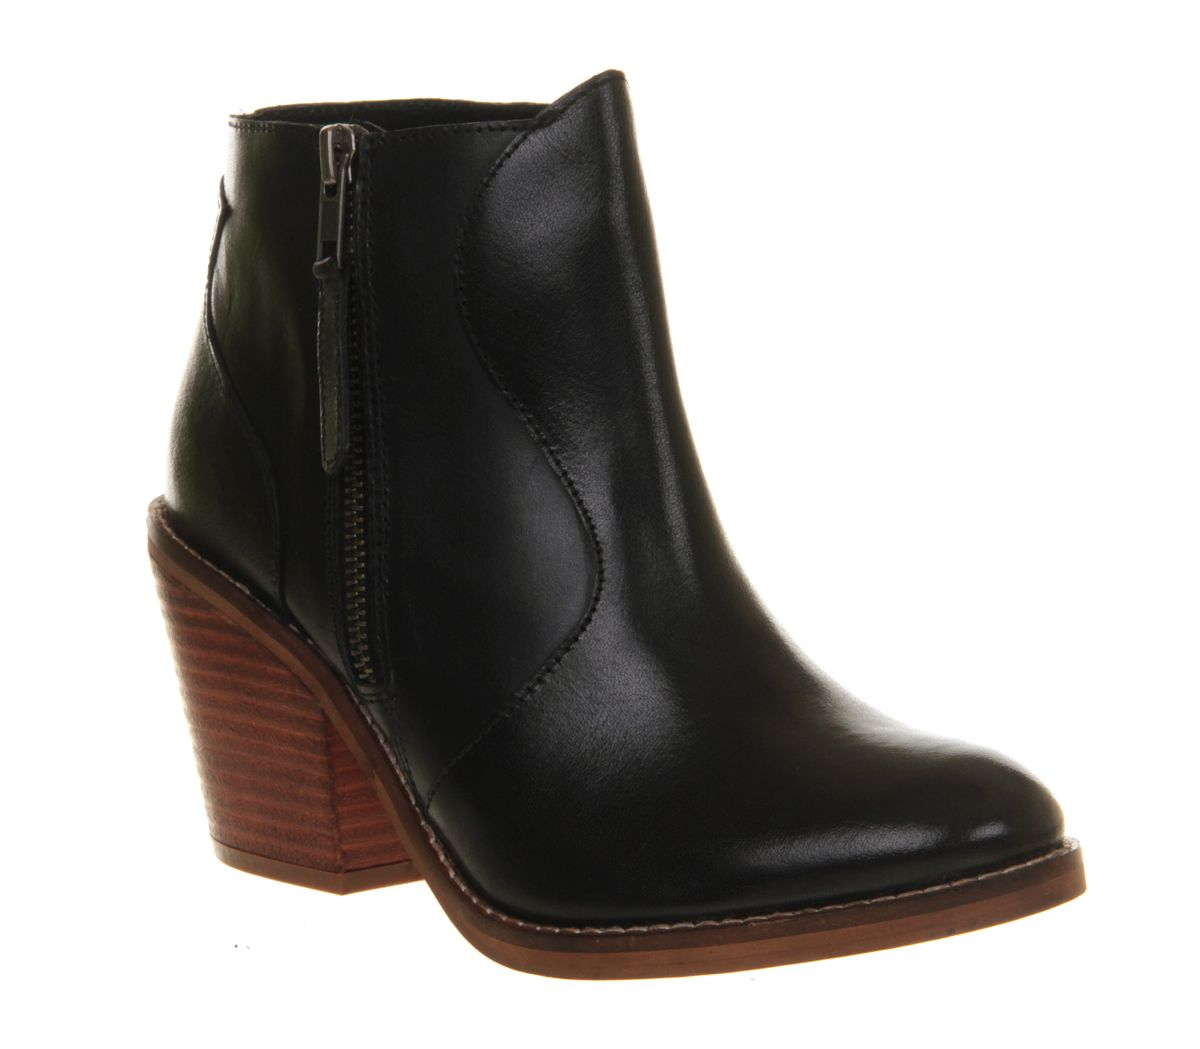 Mission leather almond toe block heel zip boots